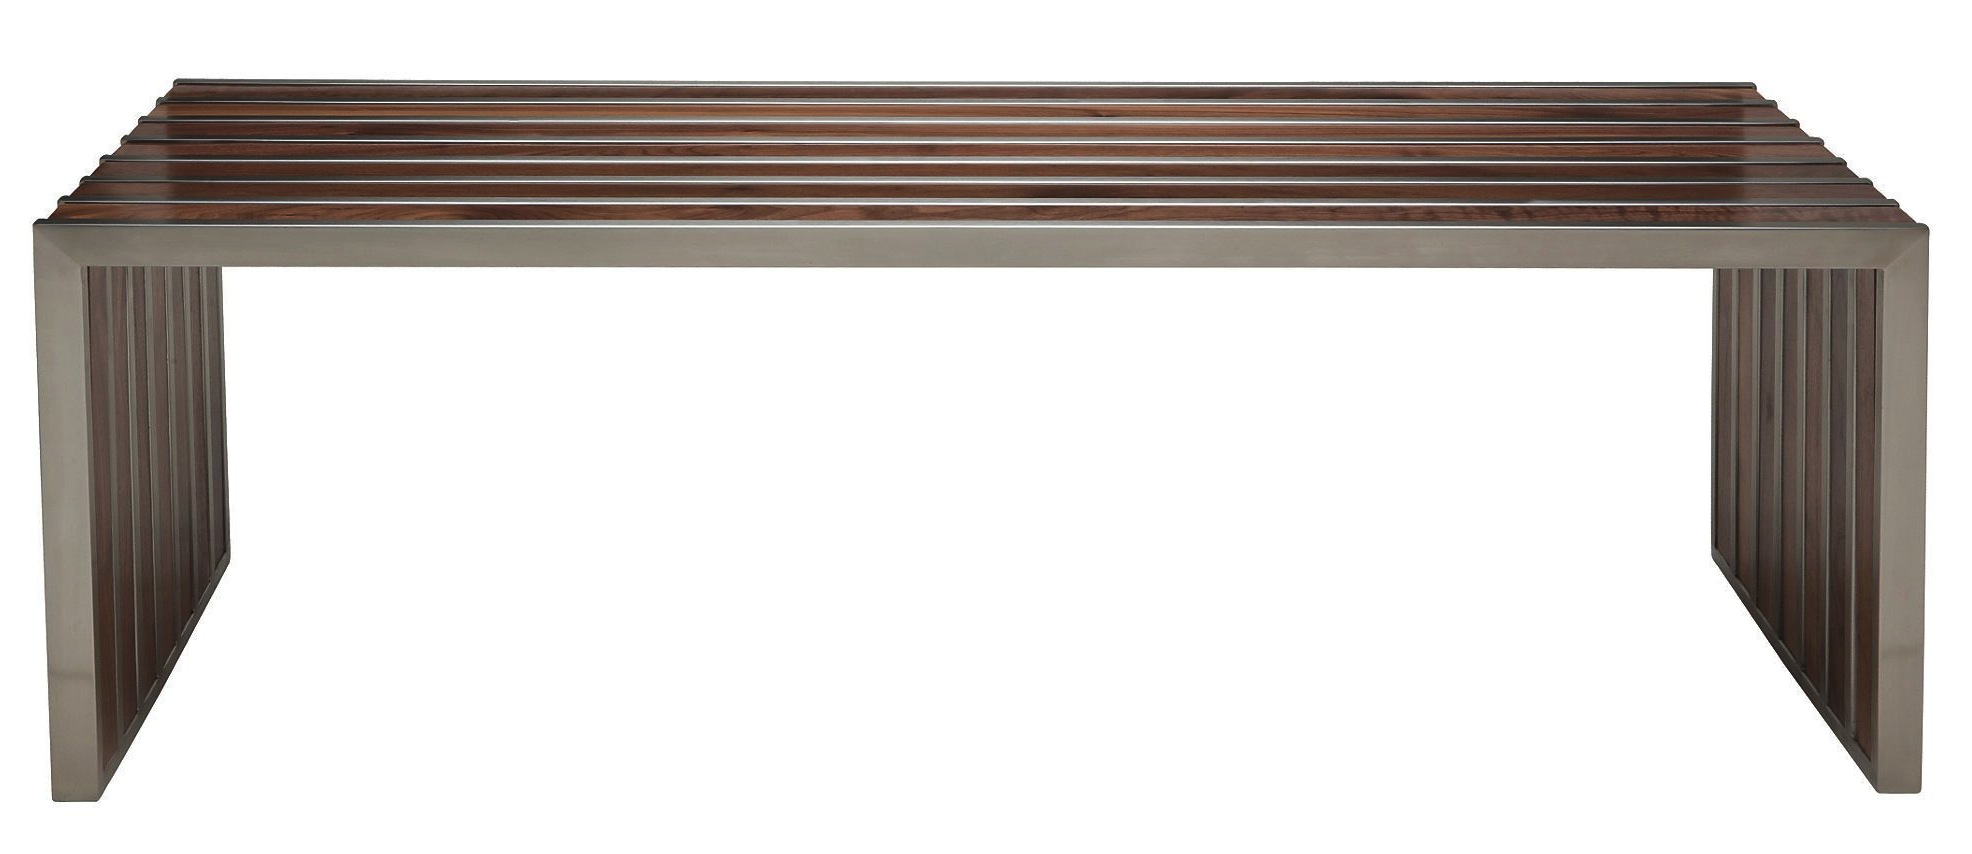 amici-bench-american-dark-walnut.jpg